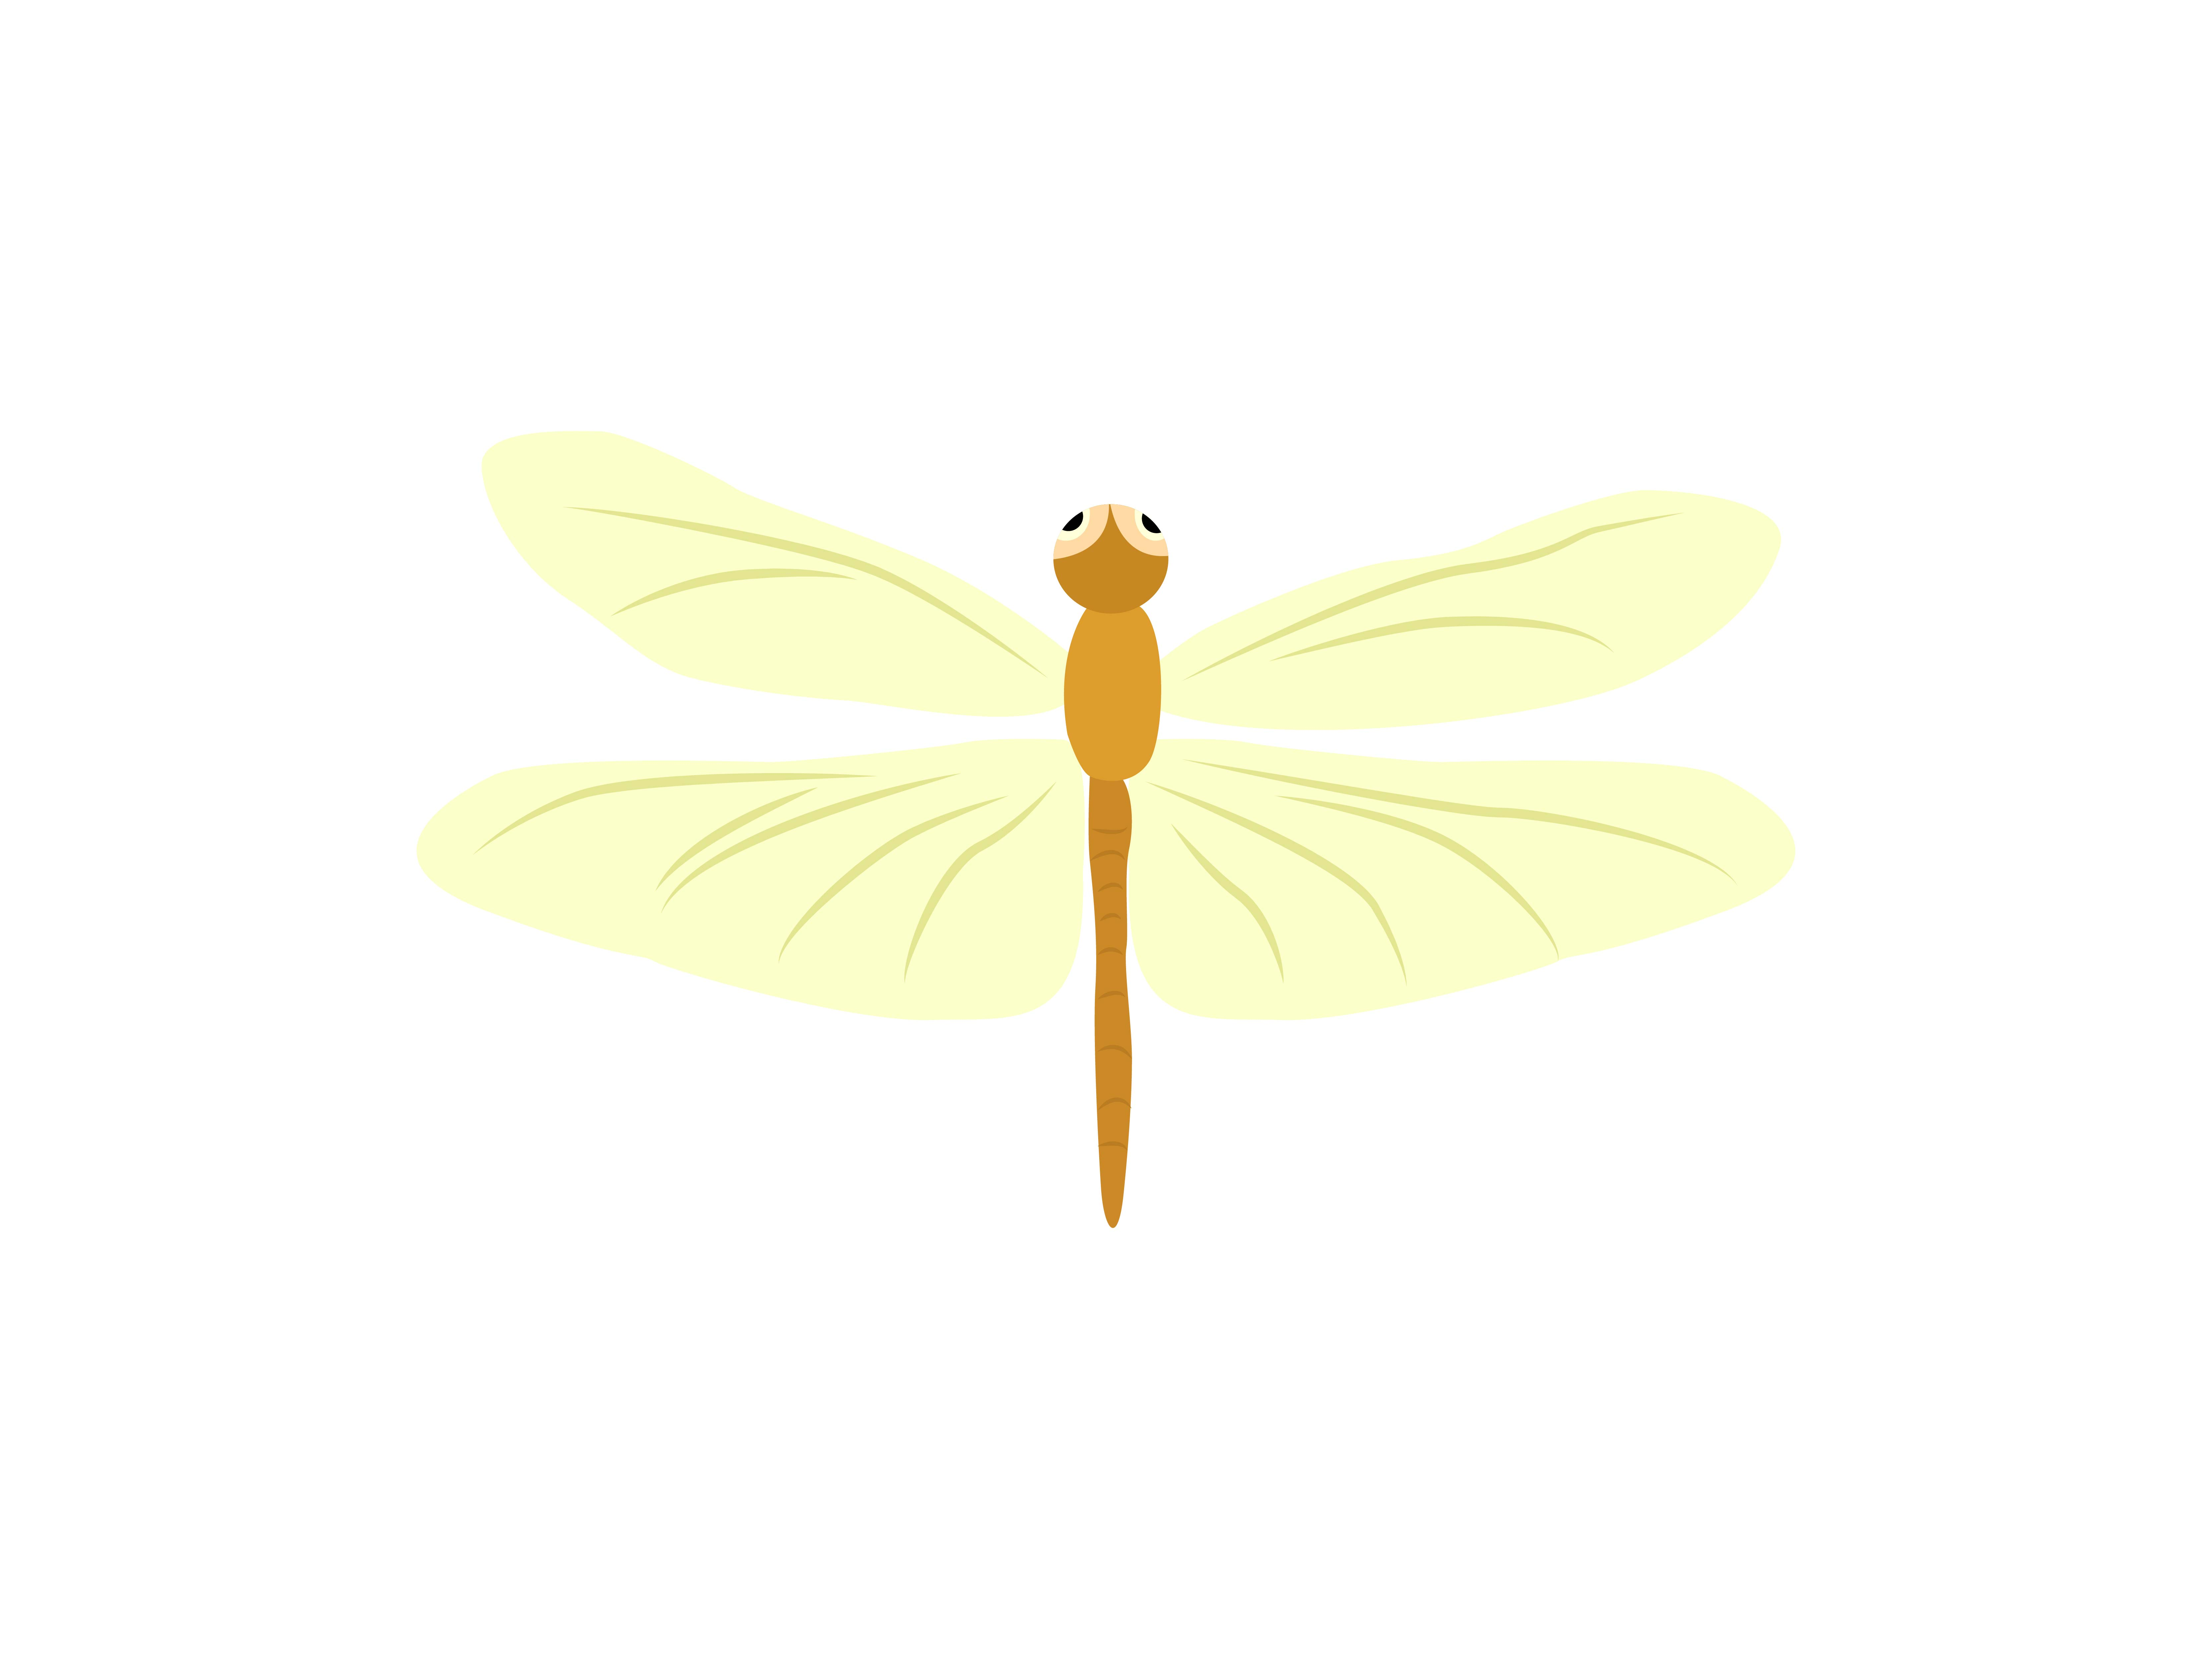 Download Free Dragonfly Animal Graphic By Archshape Creative Fabrica for Cricut Explore, Silhouette and other cutting machines.